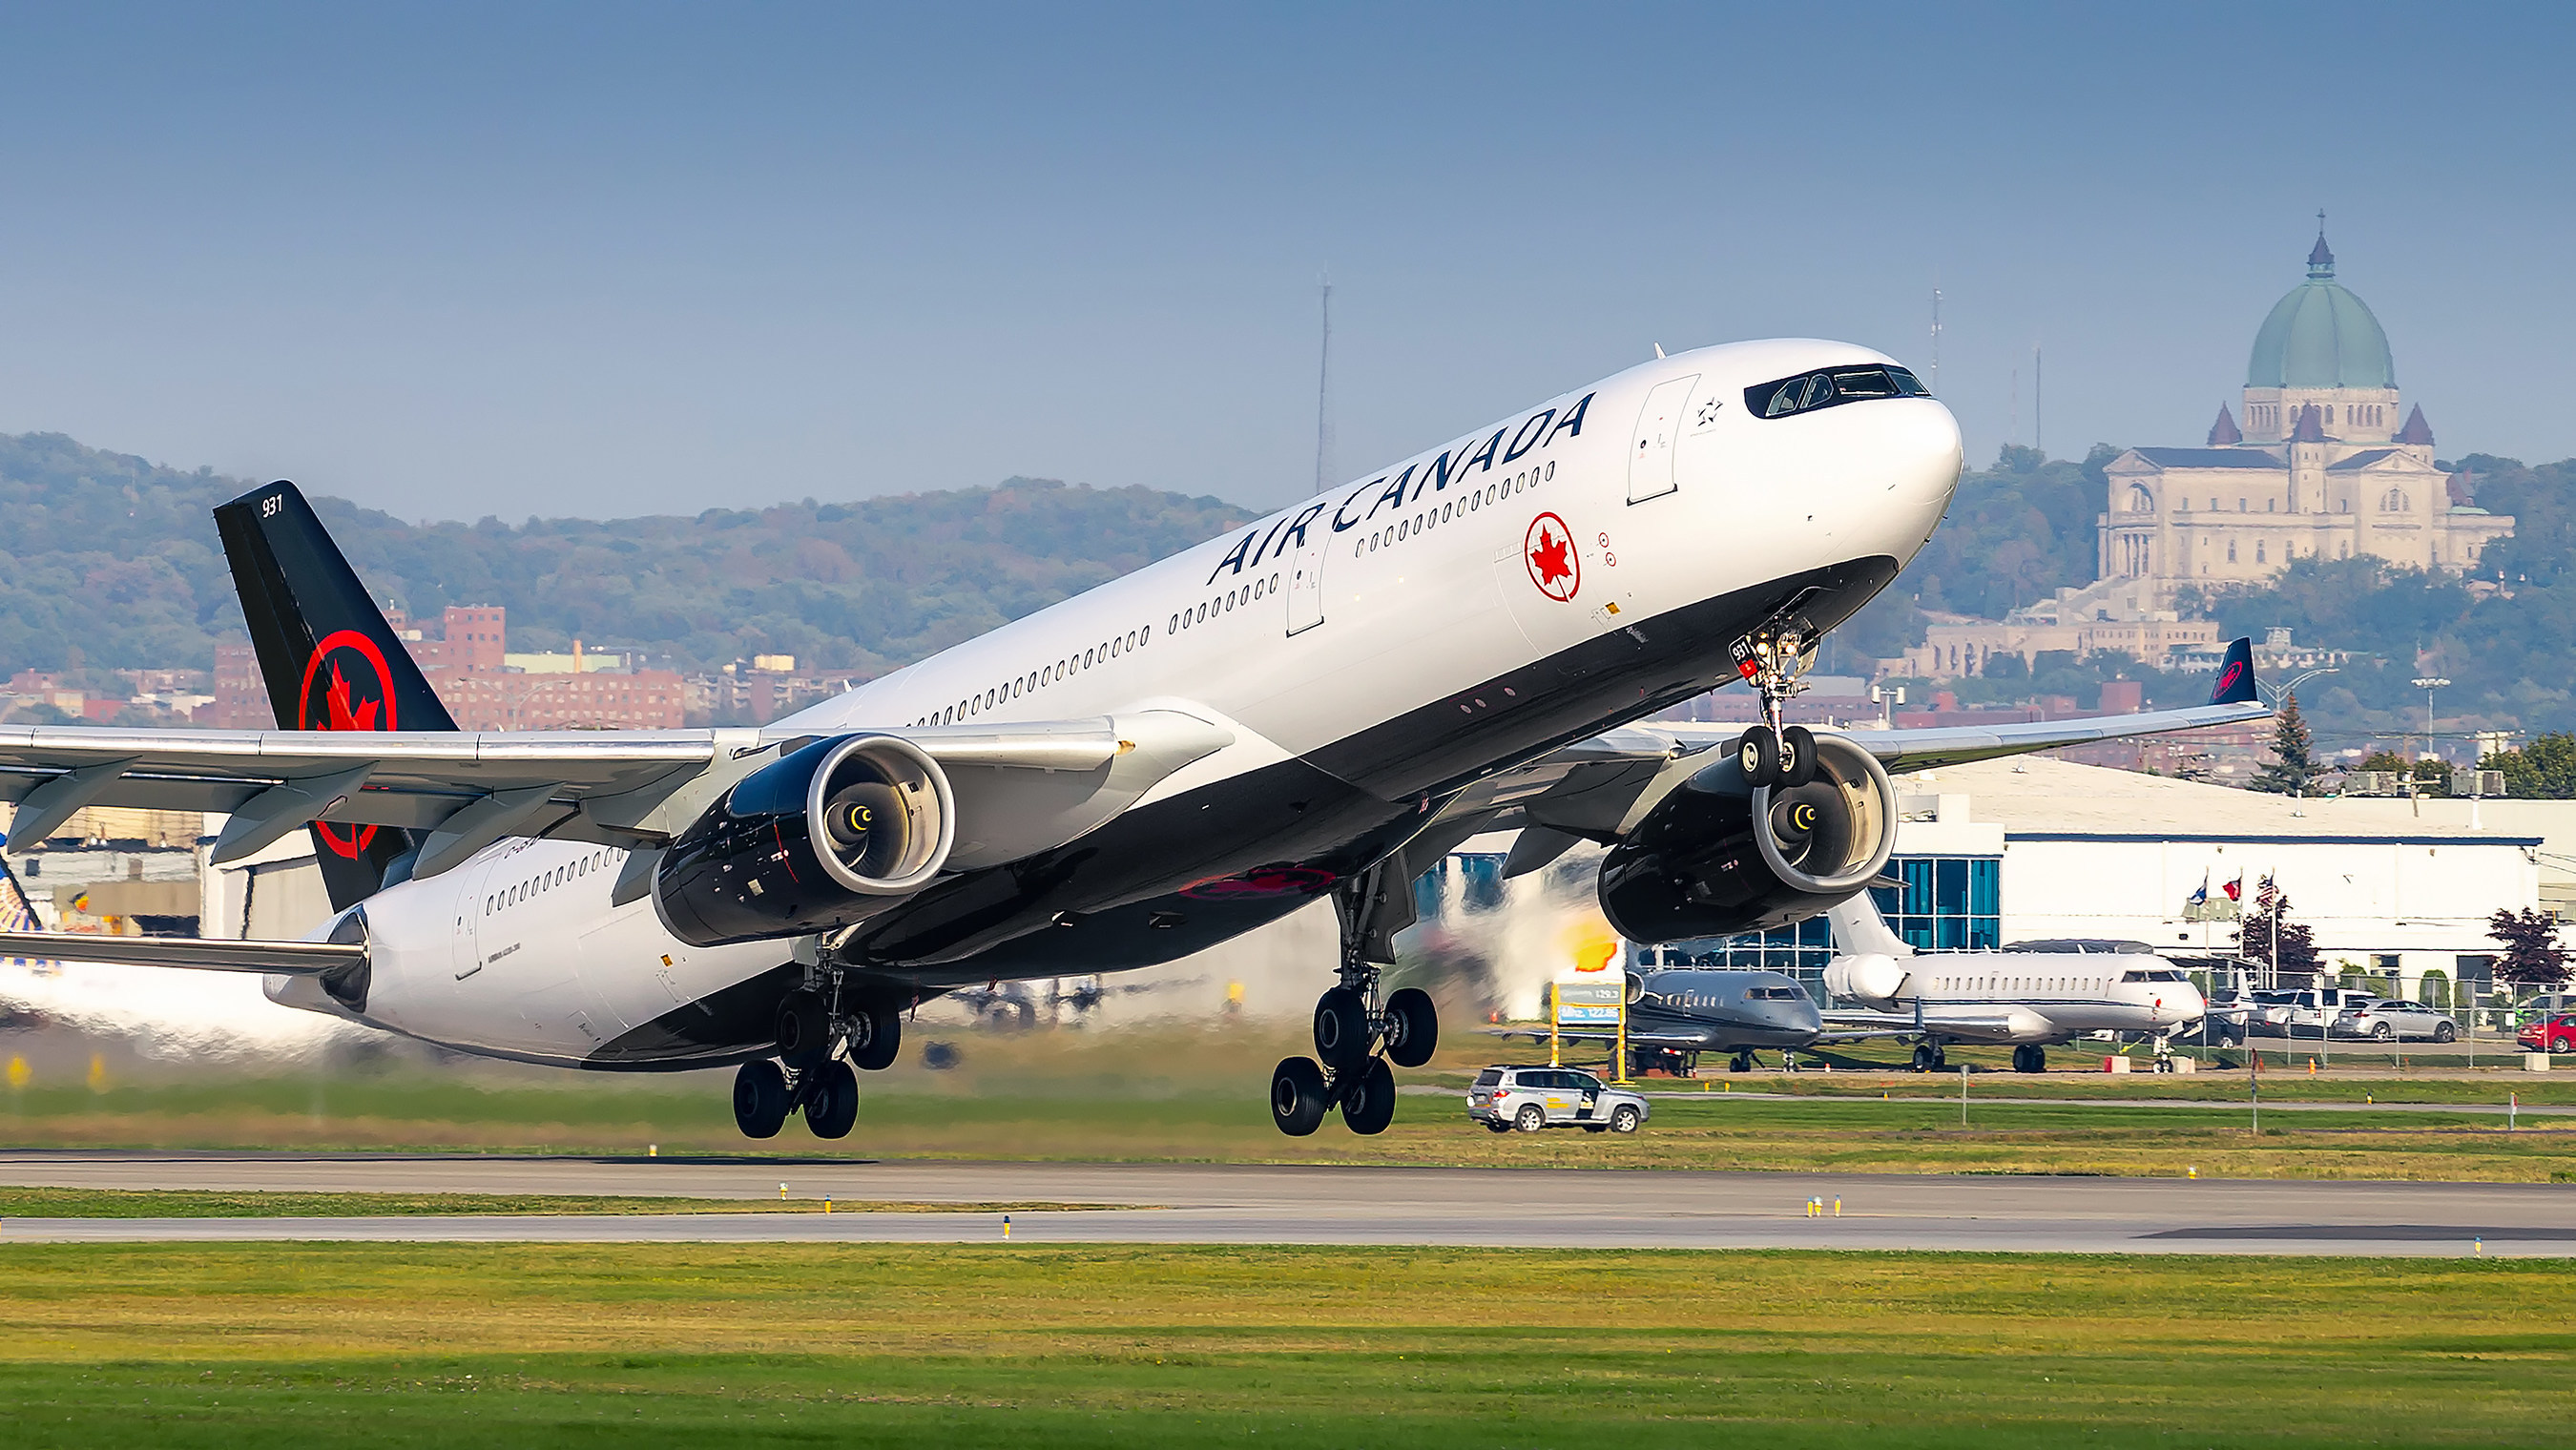 Airbus A330-300 fra Air Canada. (Foto: CNW Group/Air Canada)